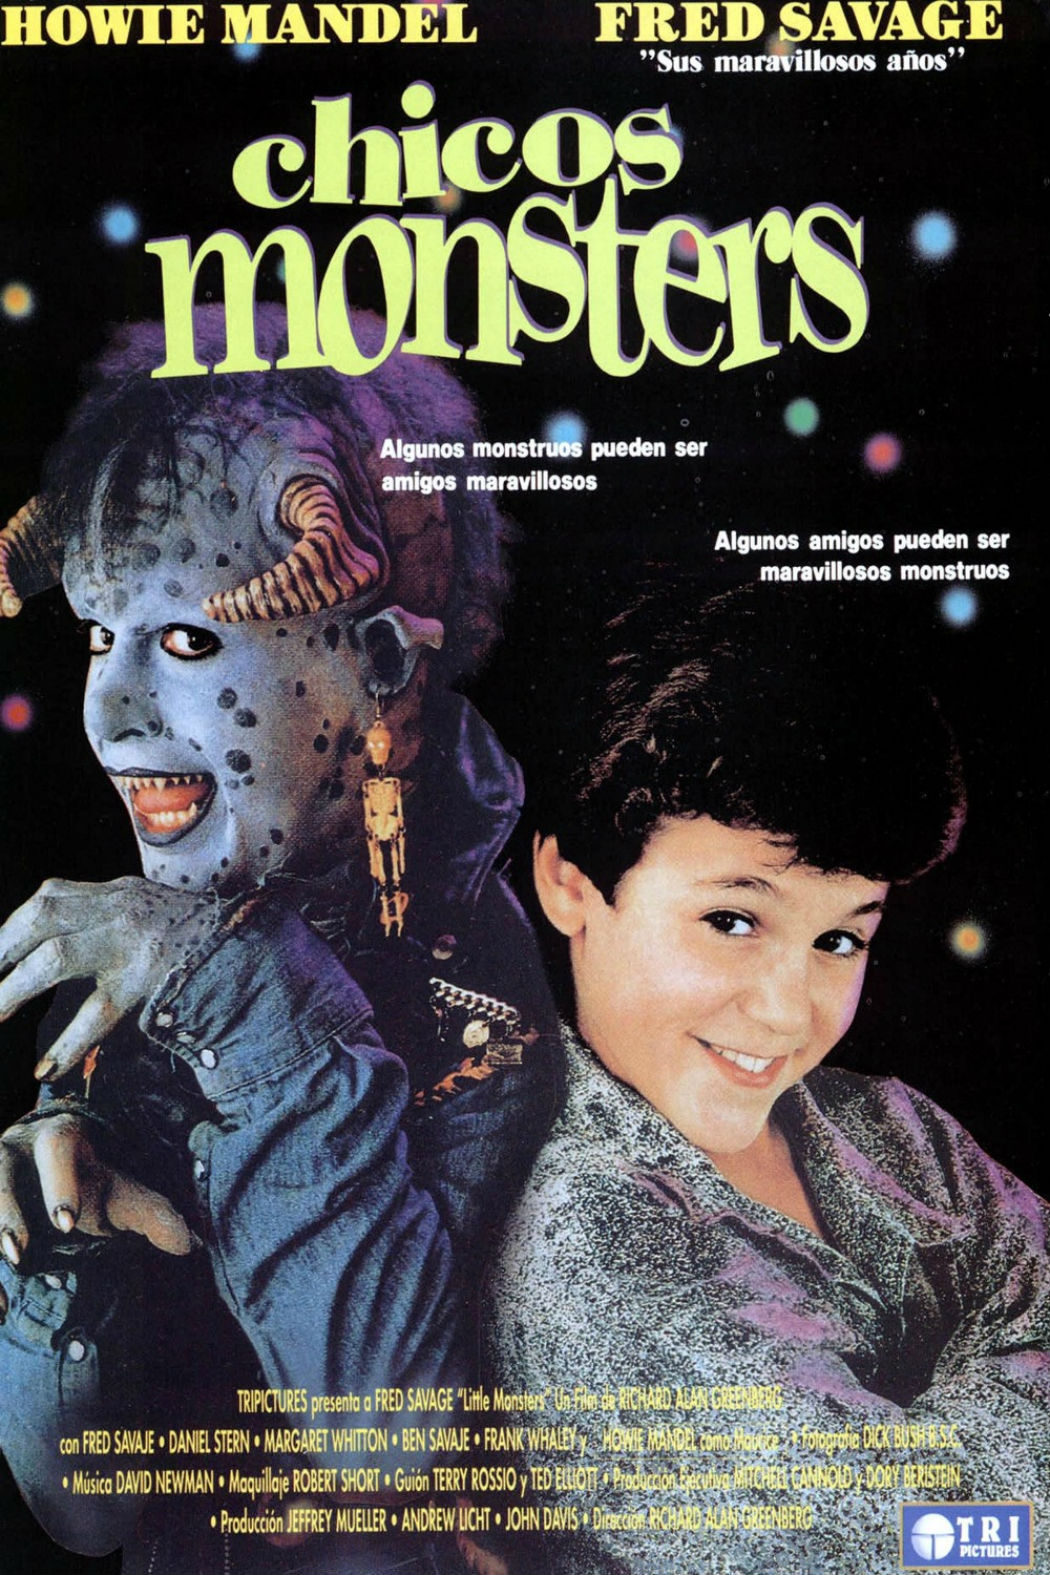 Chicos monsters (1989)